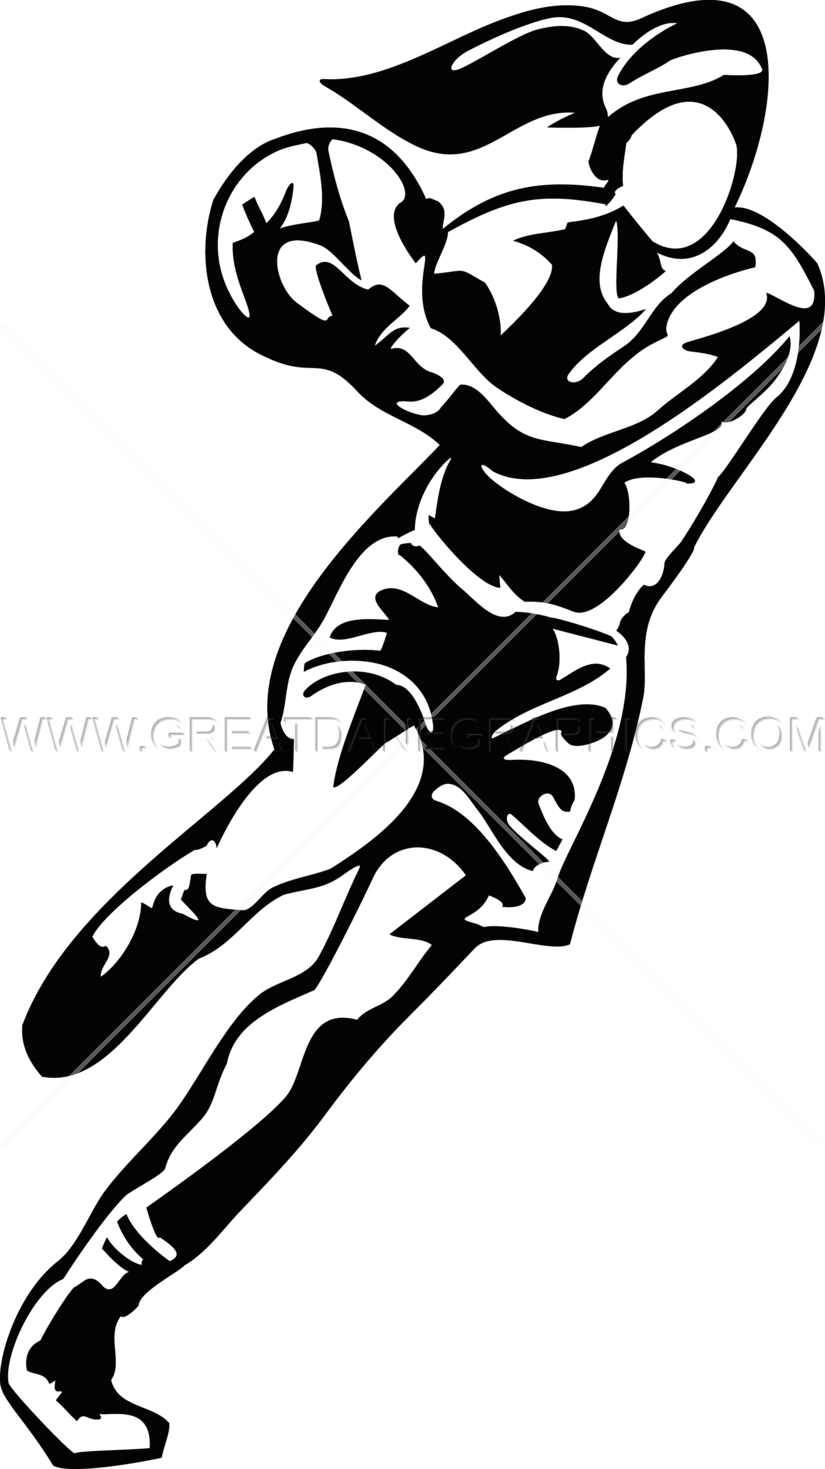 Female basketball player clipart graphic black and white Female Basketball Player | Production Ready Artwork for T-Shirt Printing graphic black and white